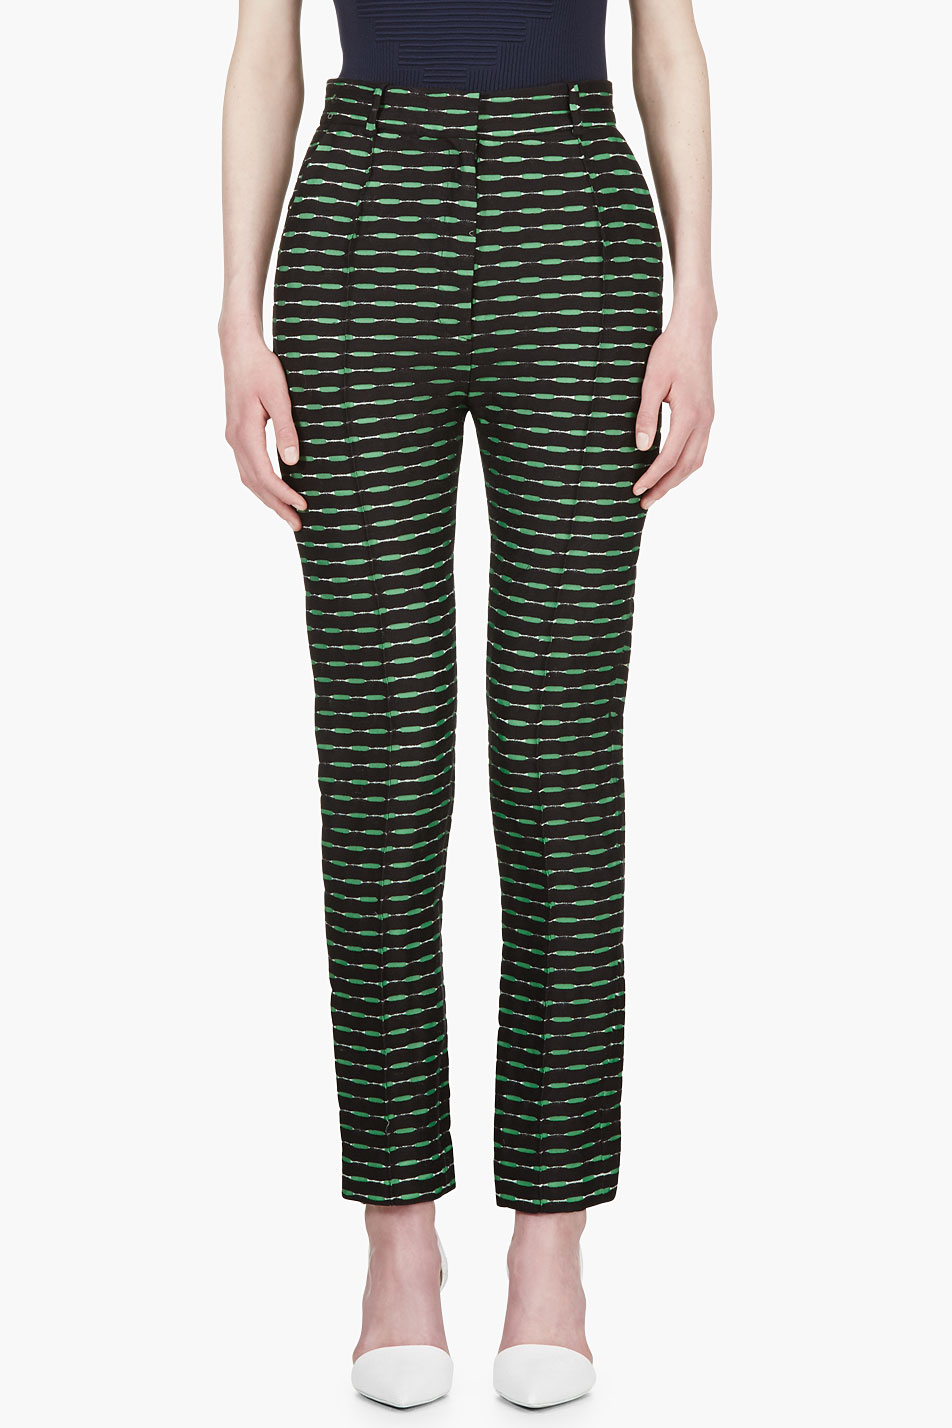 jonathan saunders green and black jacquard celeste trousers